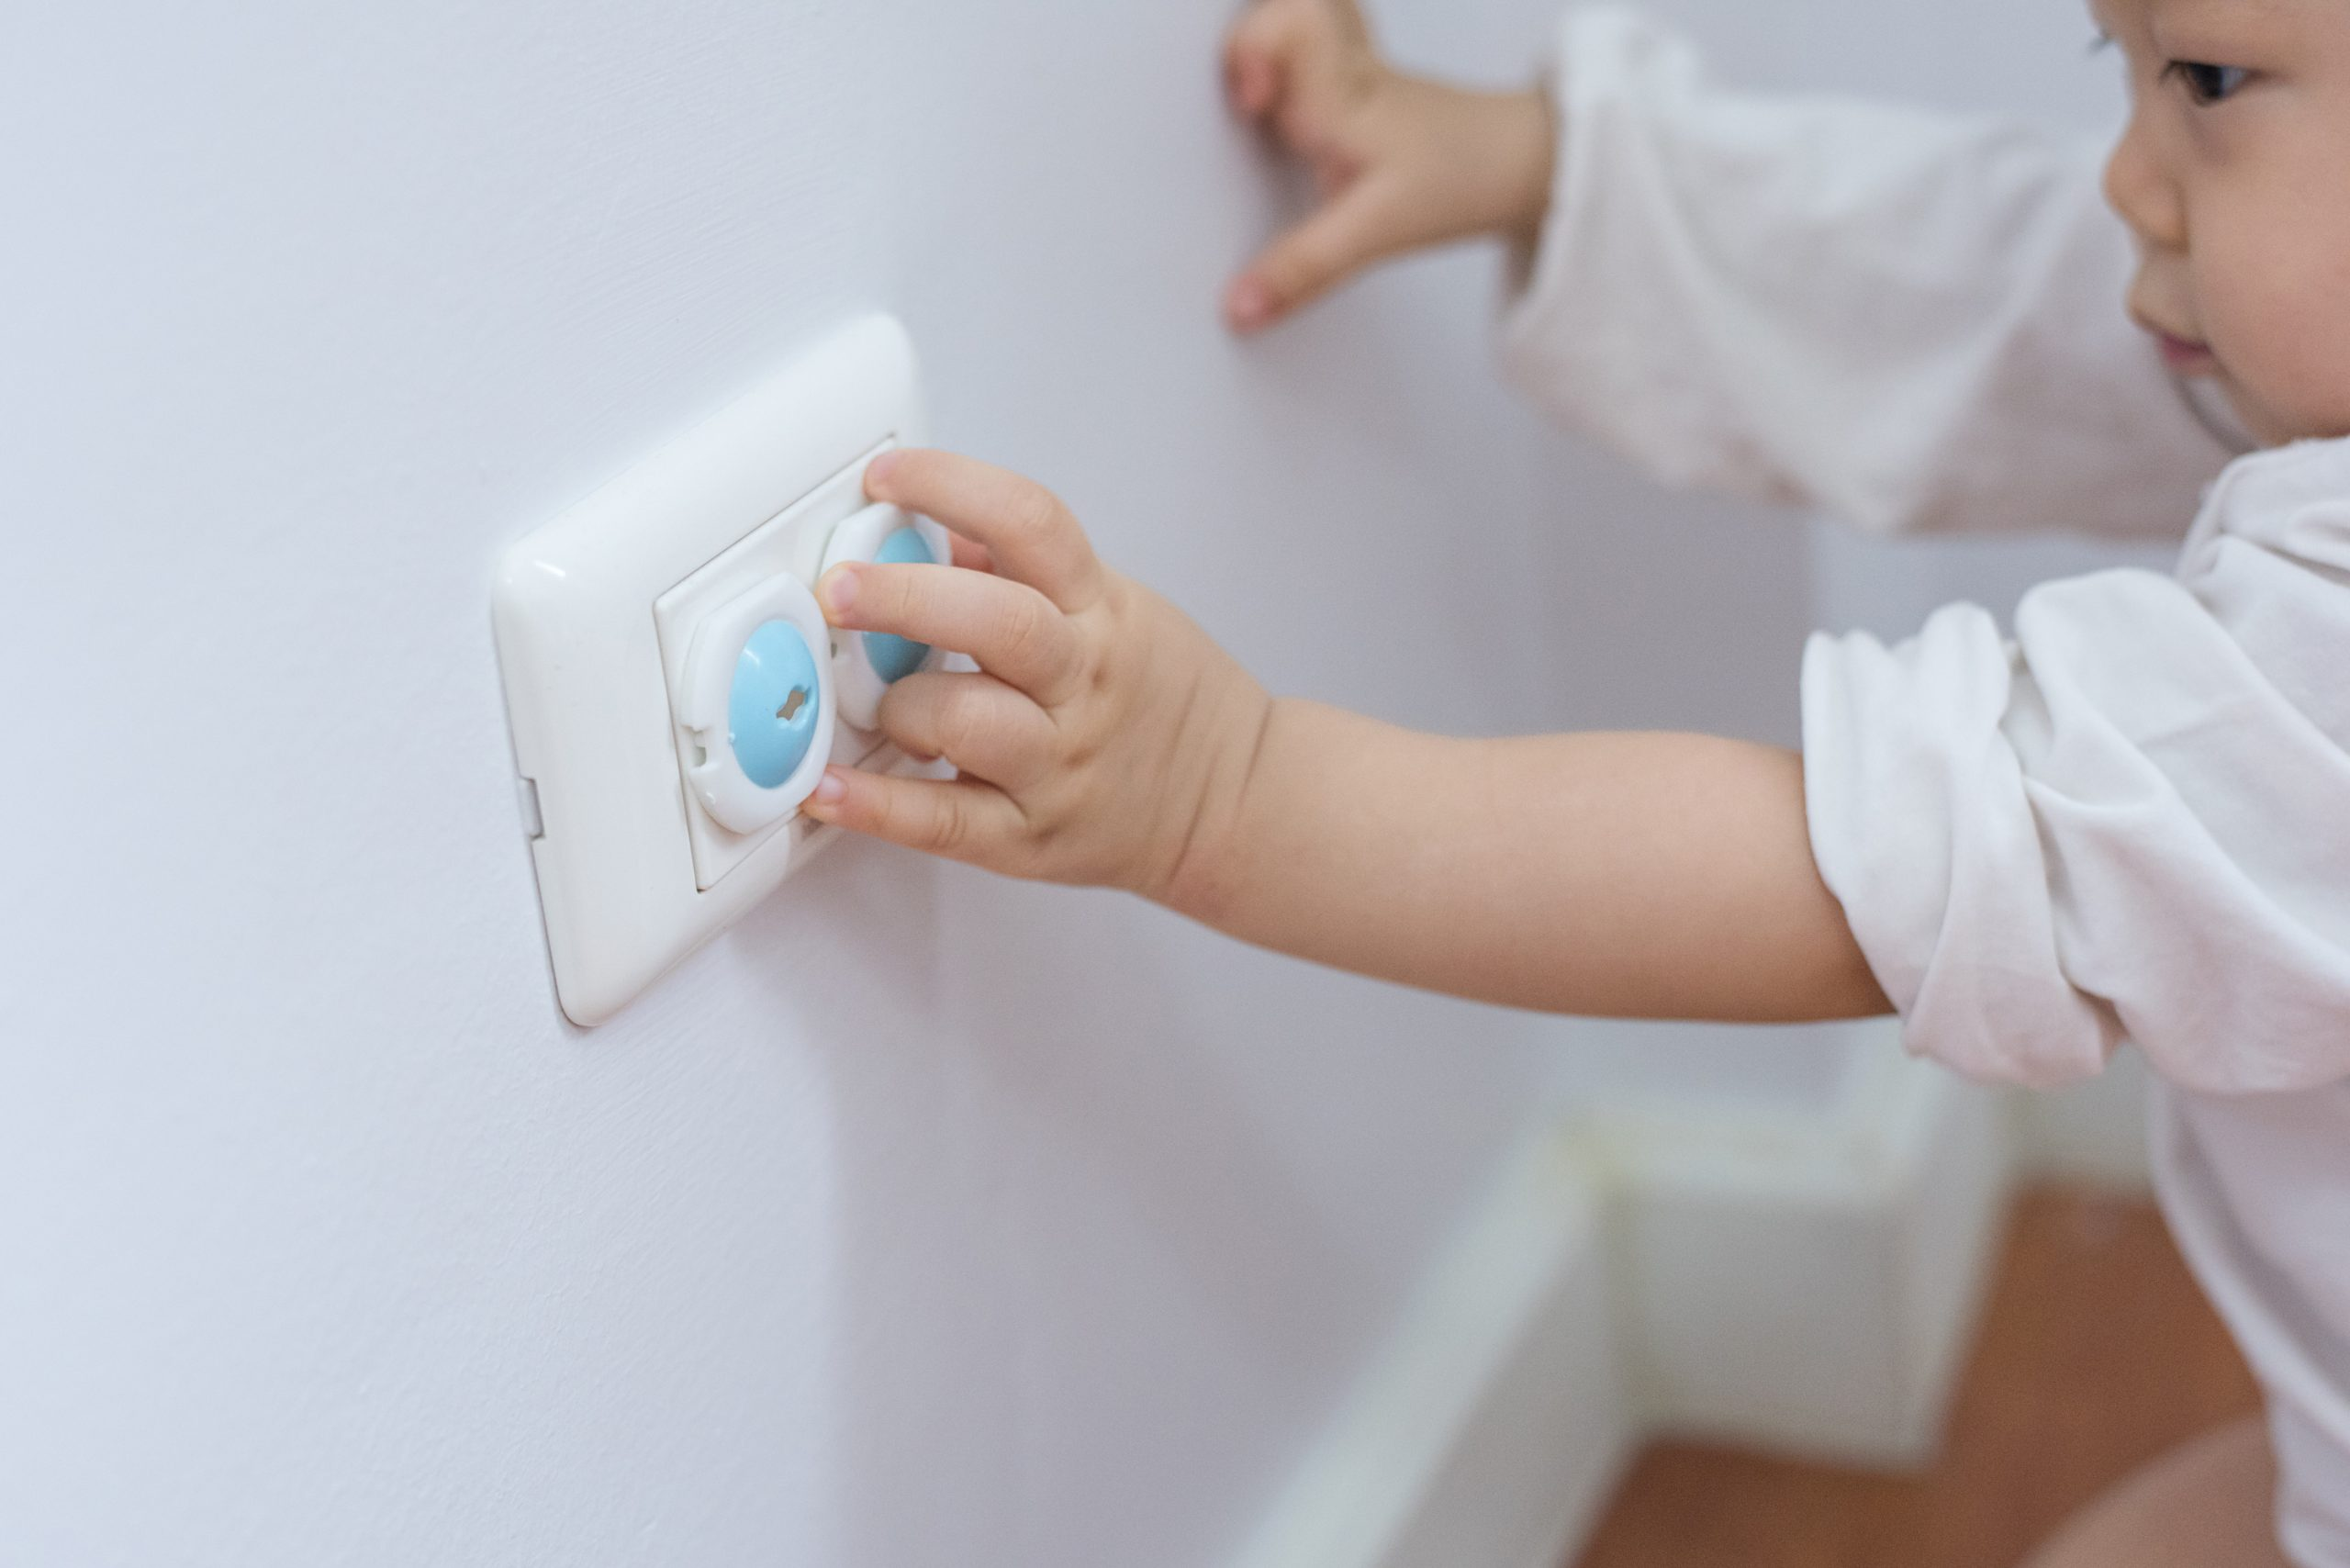 baby touching outlet